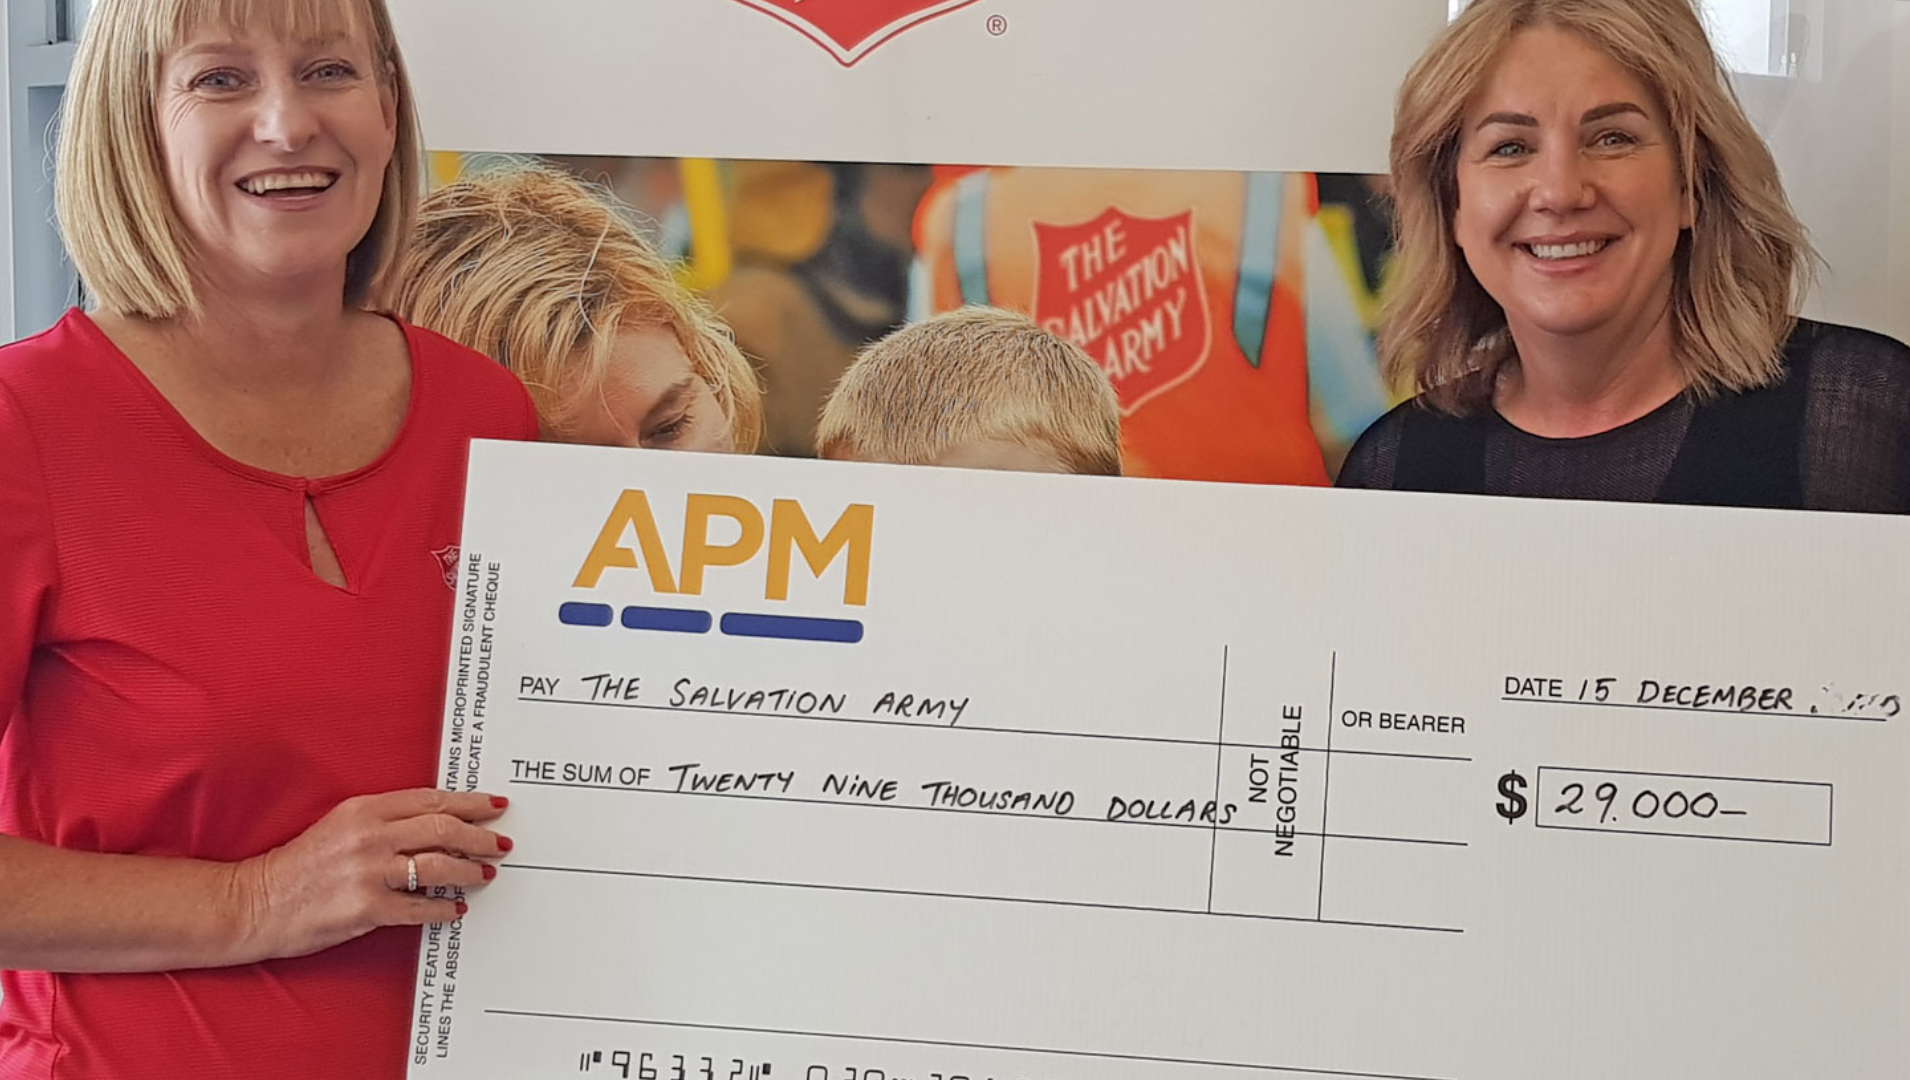 The Salvation Army's Relationship Manager Corporate Partnerships, Jayne Campbell, and APM Employment Services CEO Karen Rainbow with the cheque for $29,000